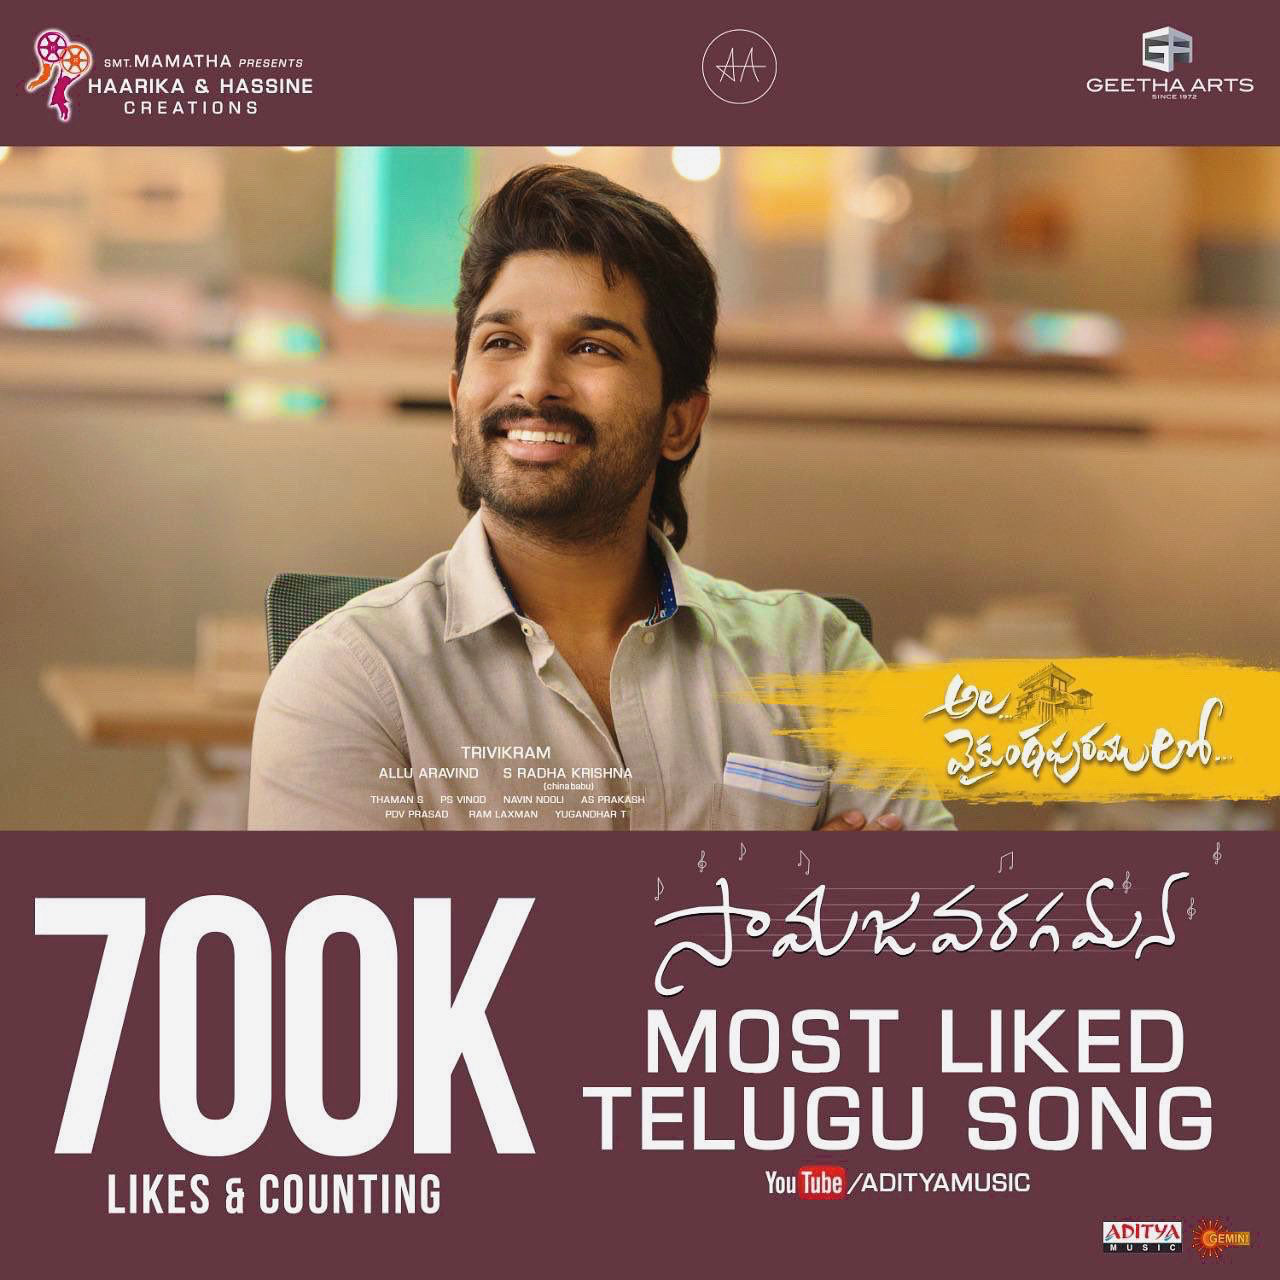 Ala Vaikunthapurramulo Samajavaragamana becomes the most liked Telugu song